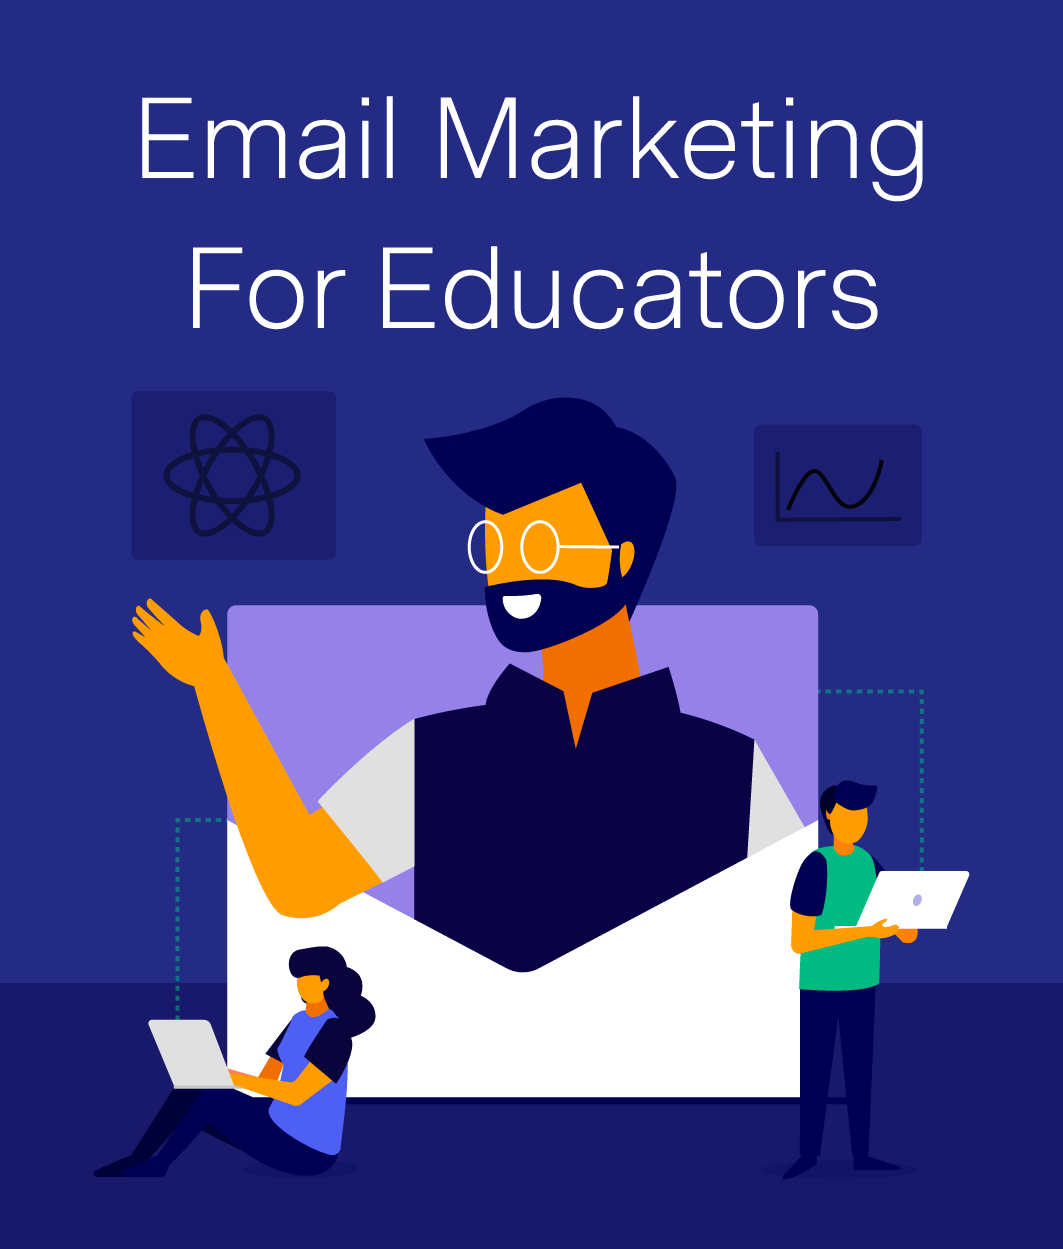 Email-Marketing-for-Educators-Guide-COVER-1063-1249 (1)